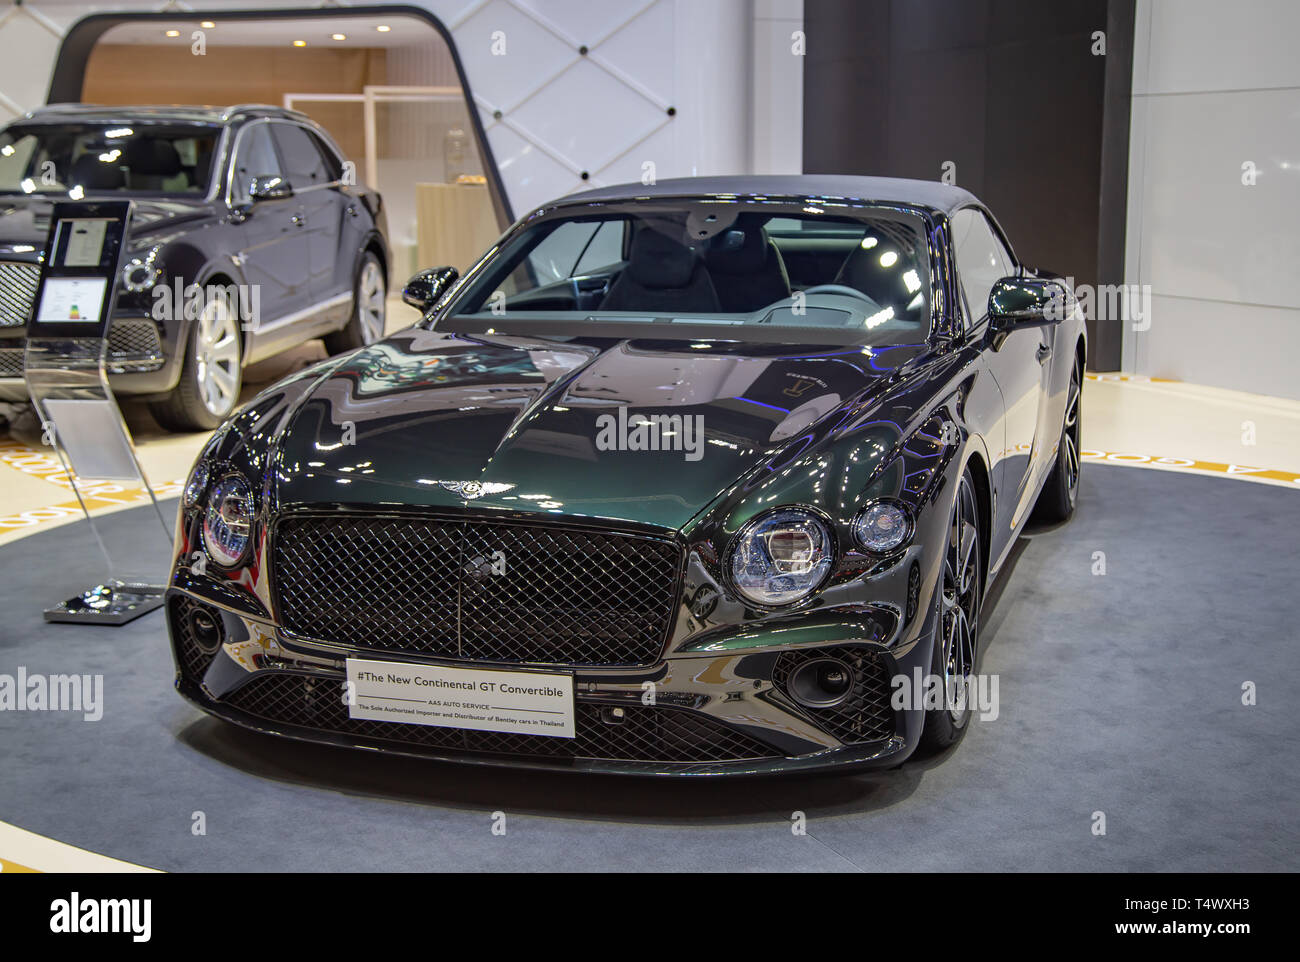 Nonthaburi, Thailand - April 3, 2019: Bentley Continental GT Convertible luxury car presented in Motor Show 2019 Stock Photo